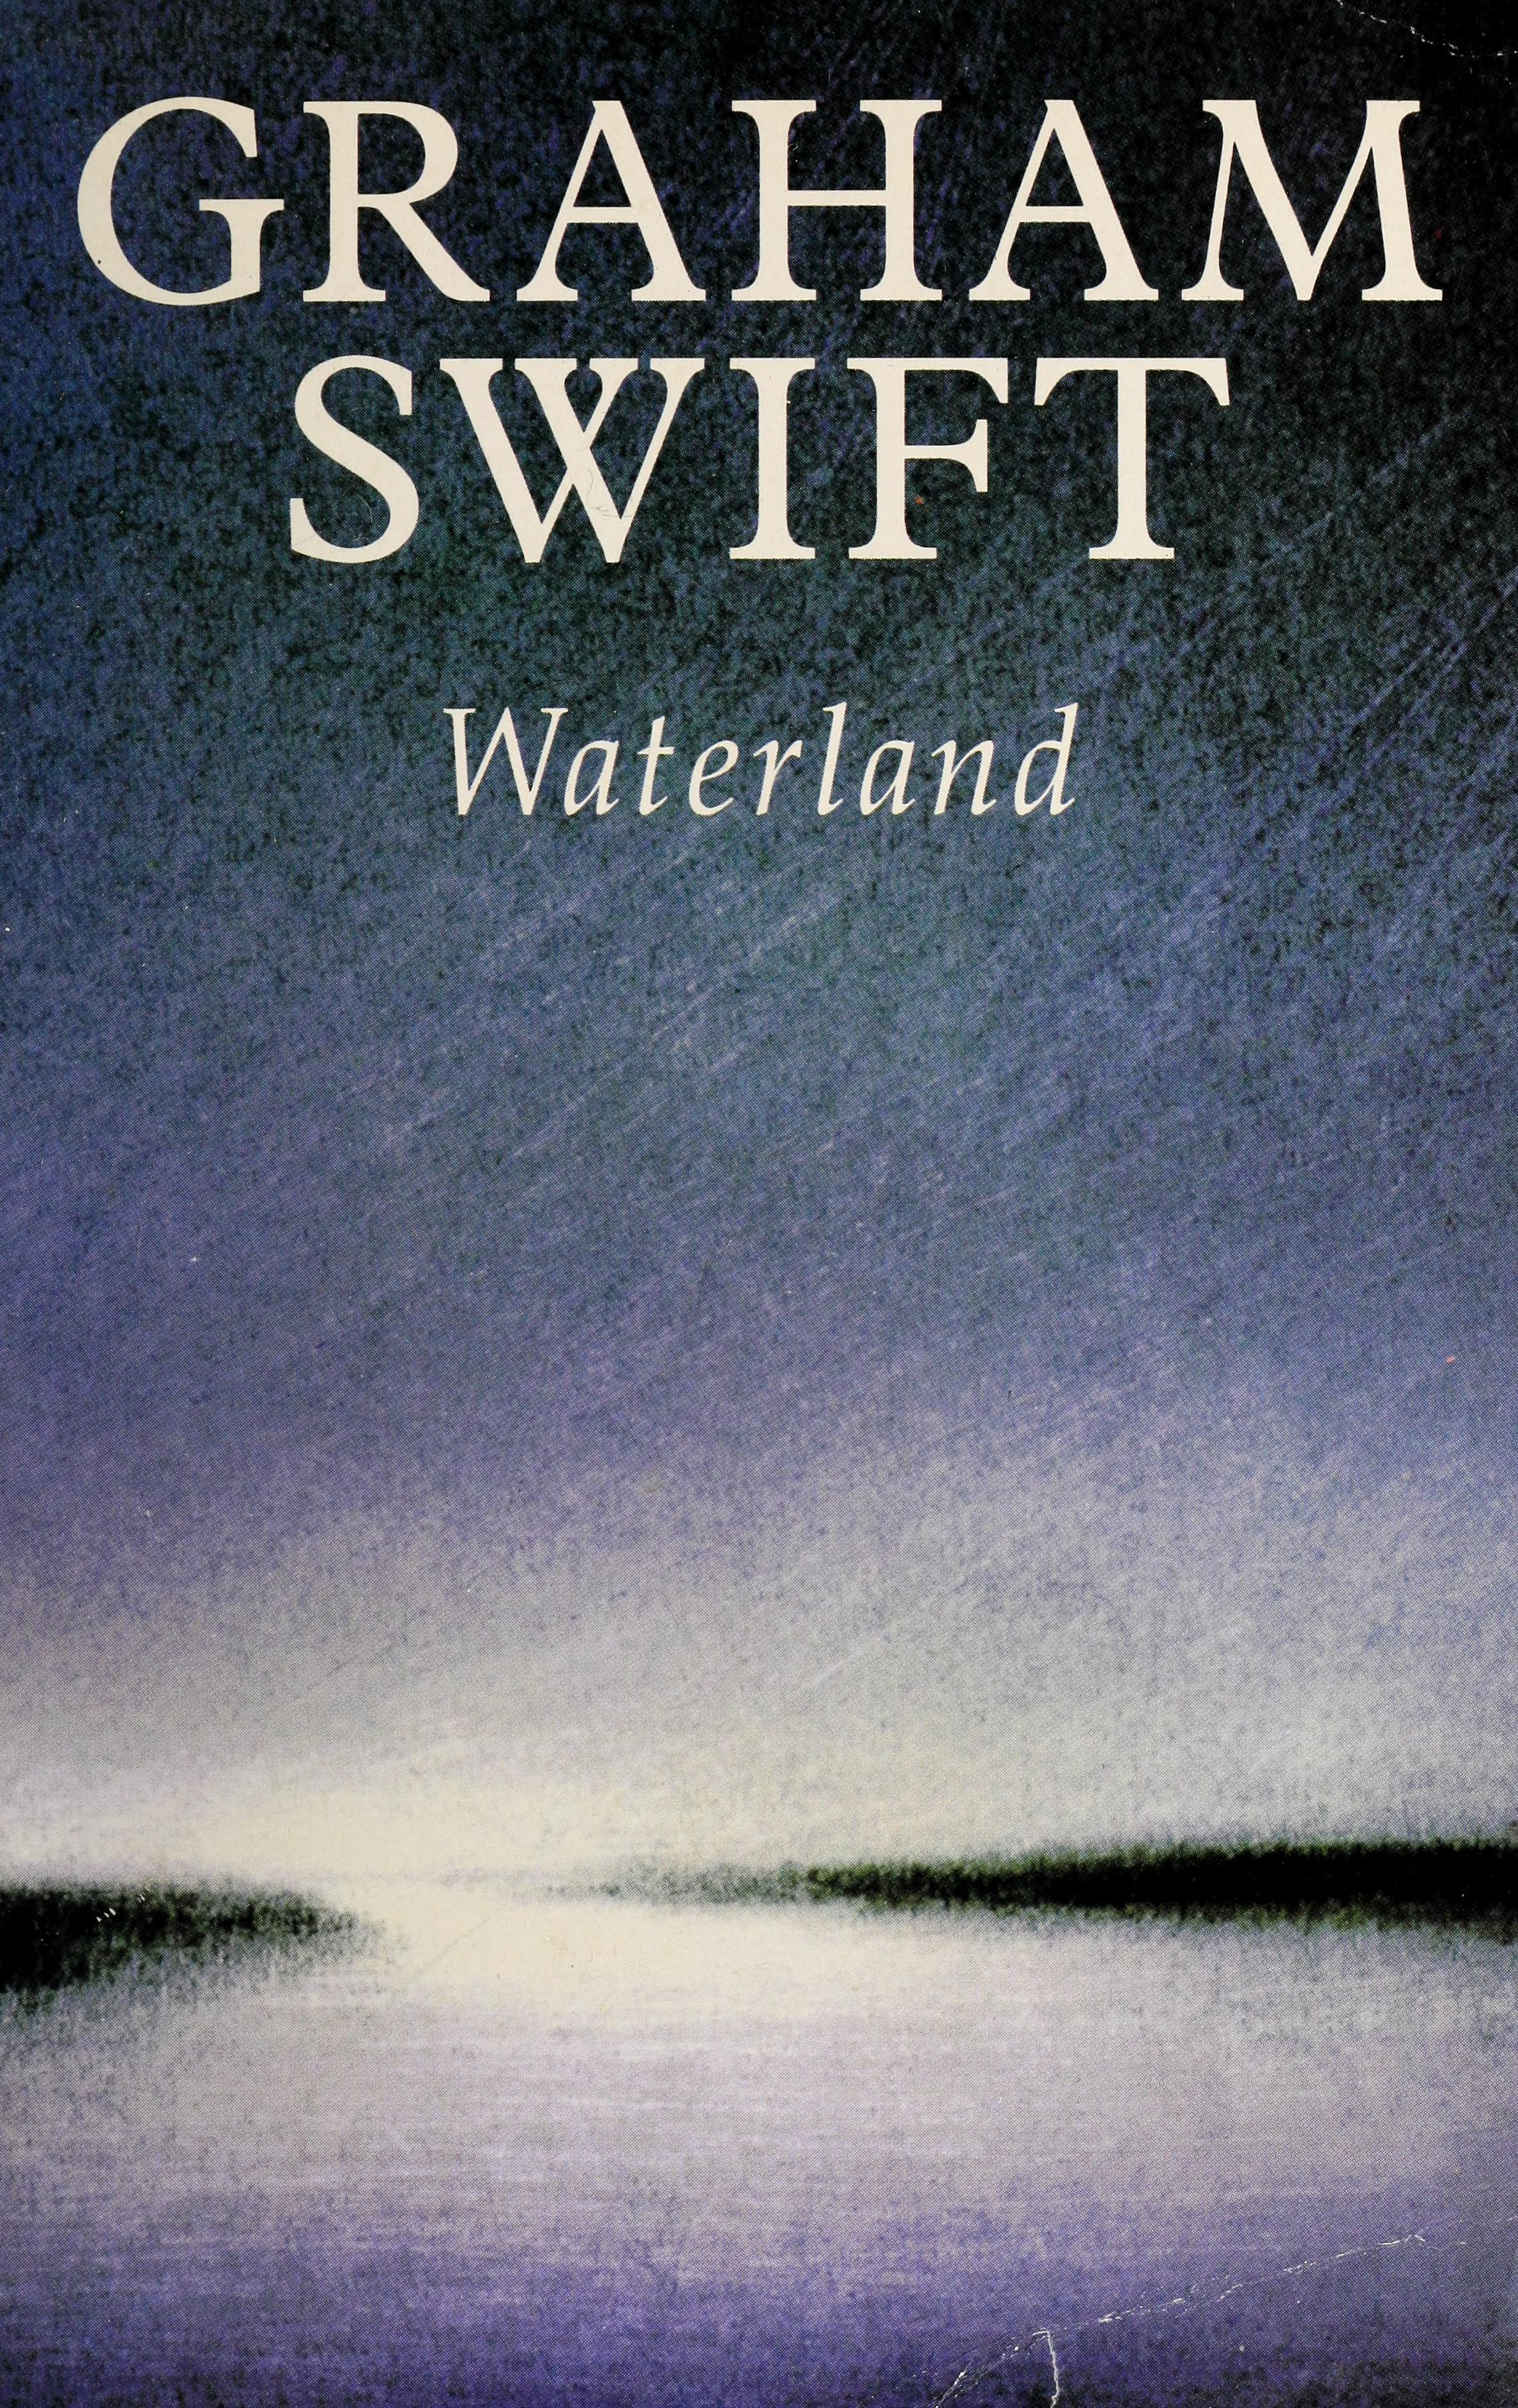 Waterland Swift Graham 1949 Free Download Borrow And Streaming Internet Archive